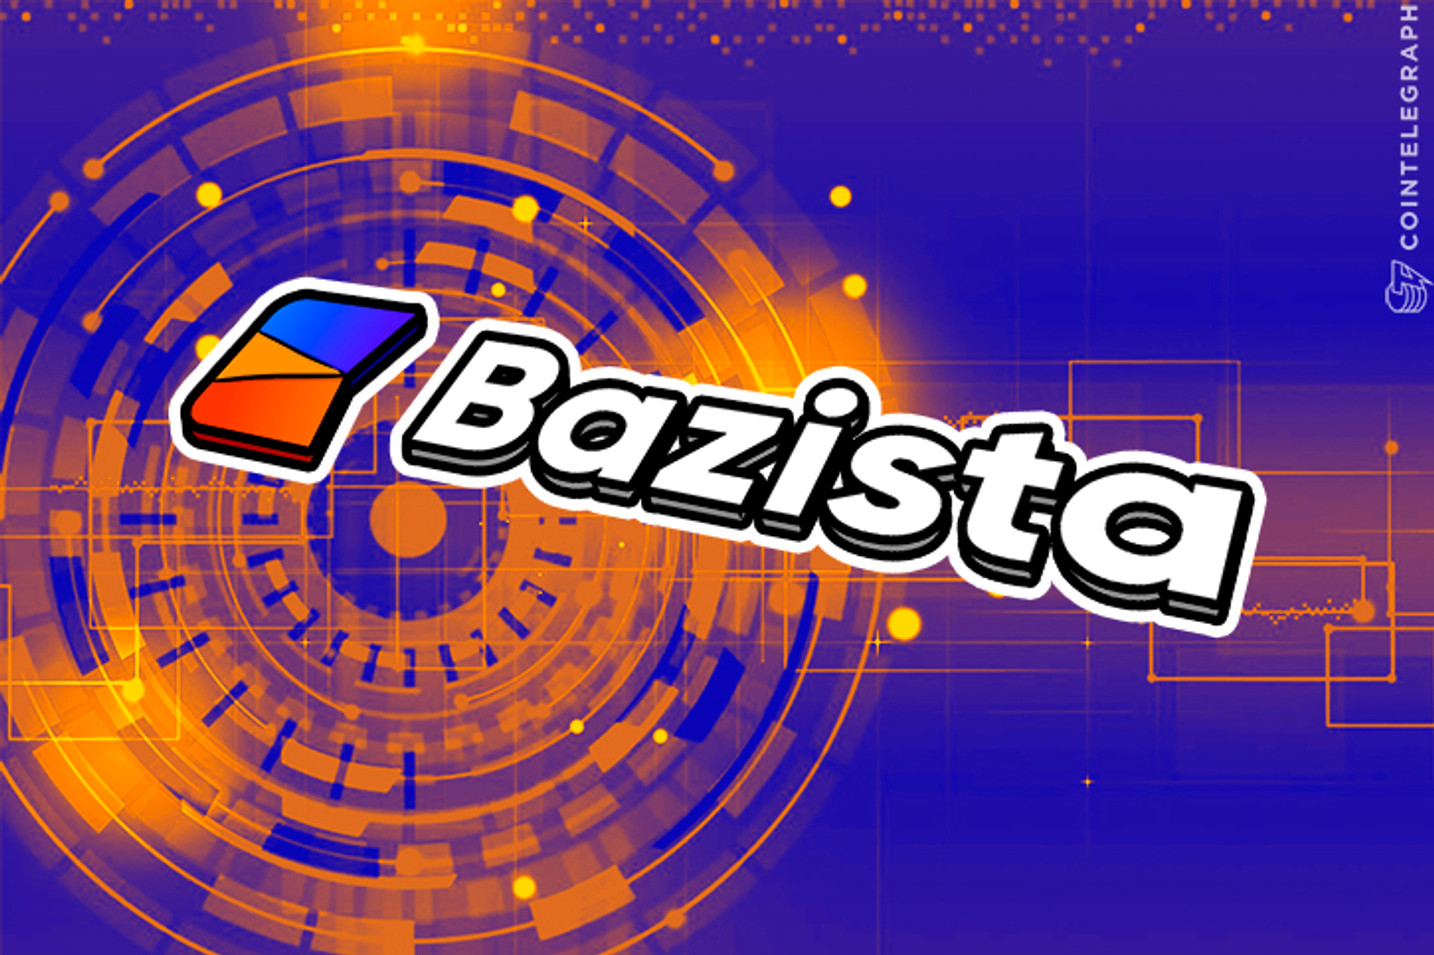 Bazista: Simple yet Incredible!